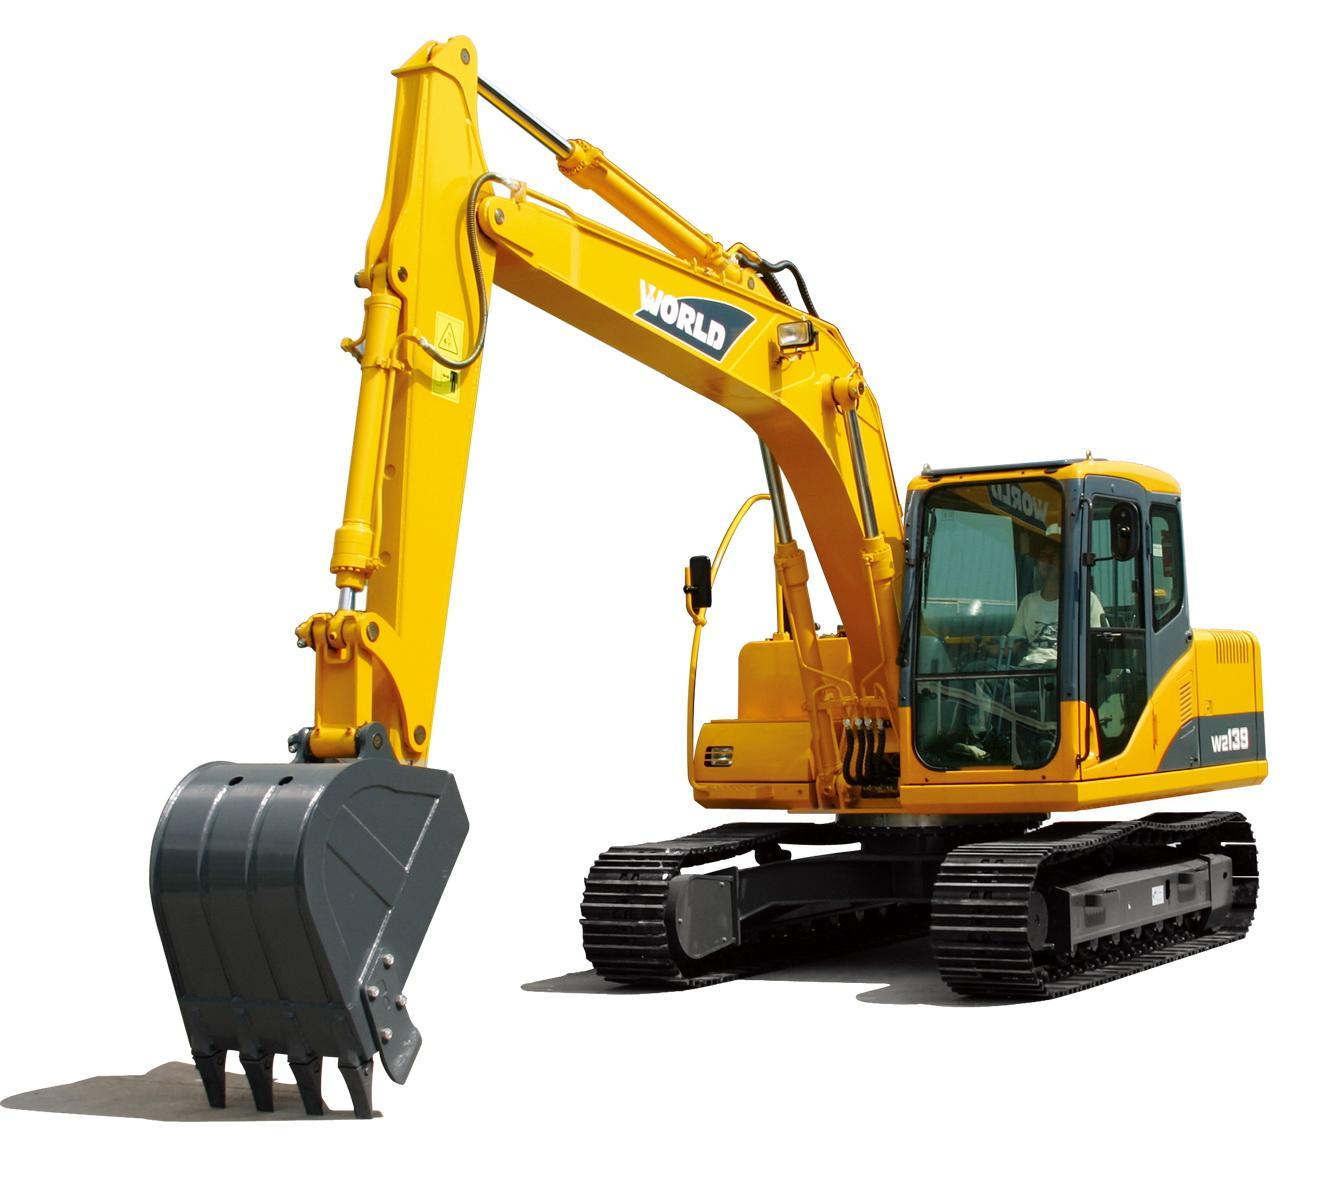 Excavator Insurance, Truck Insurance, Truck Insurance Brokers, Truck Insurance Quotes